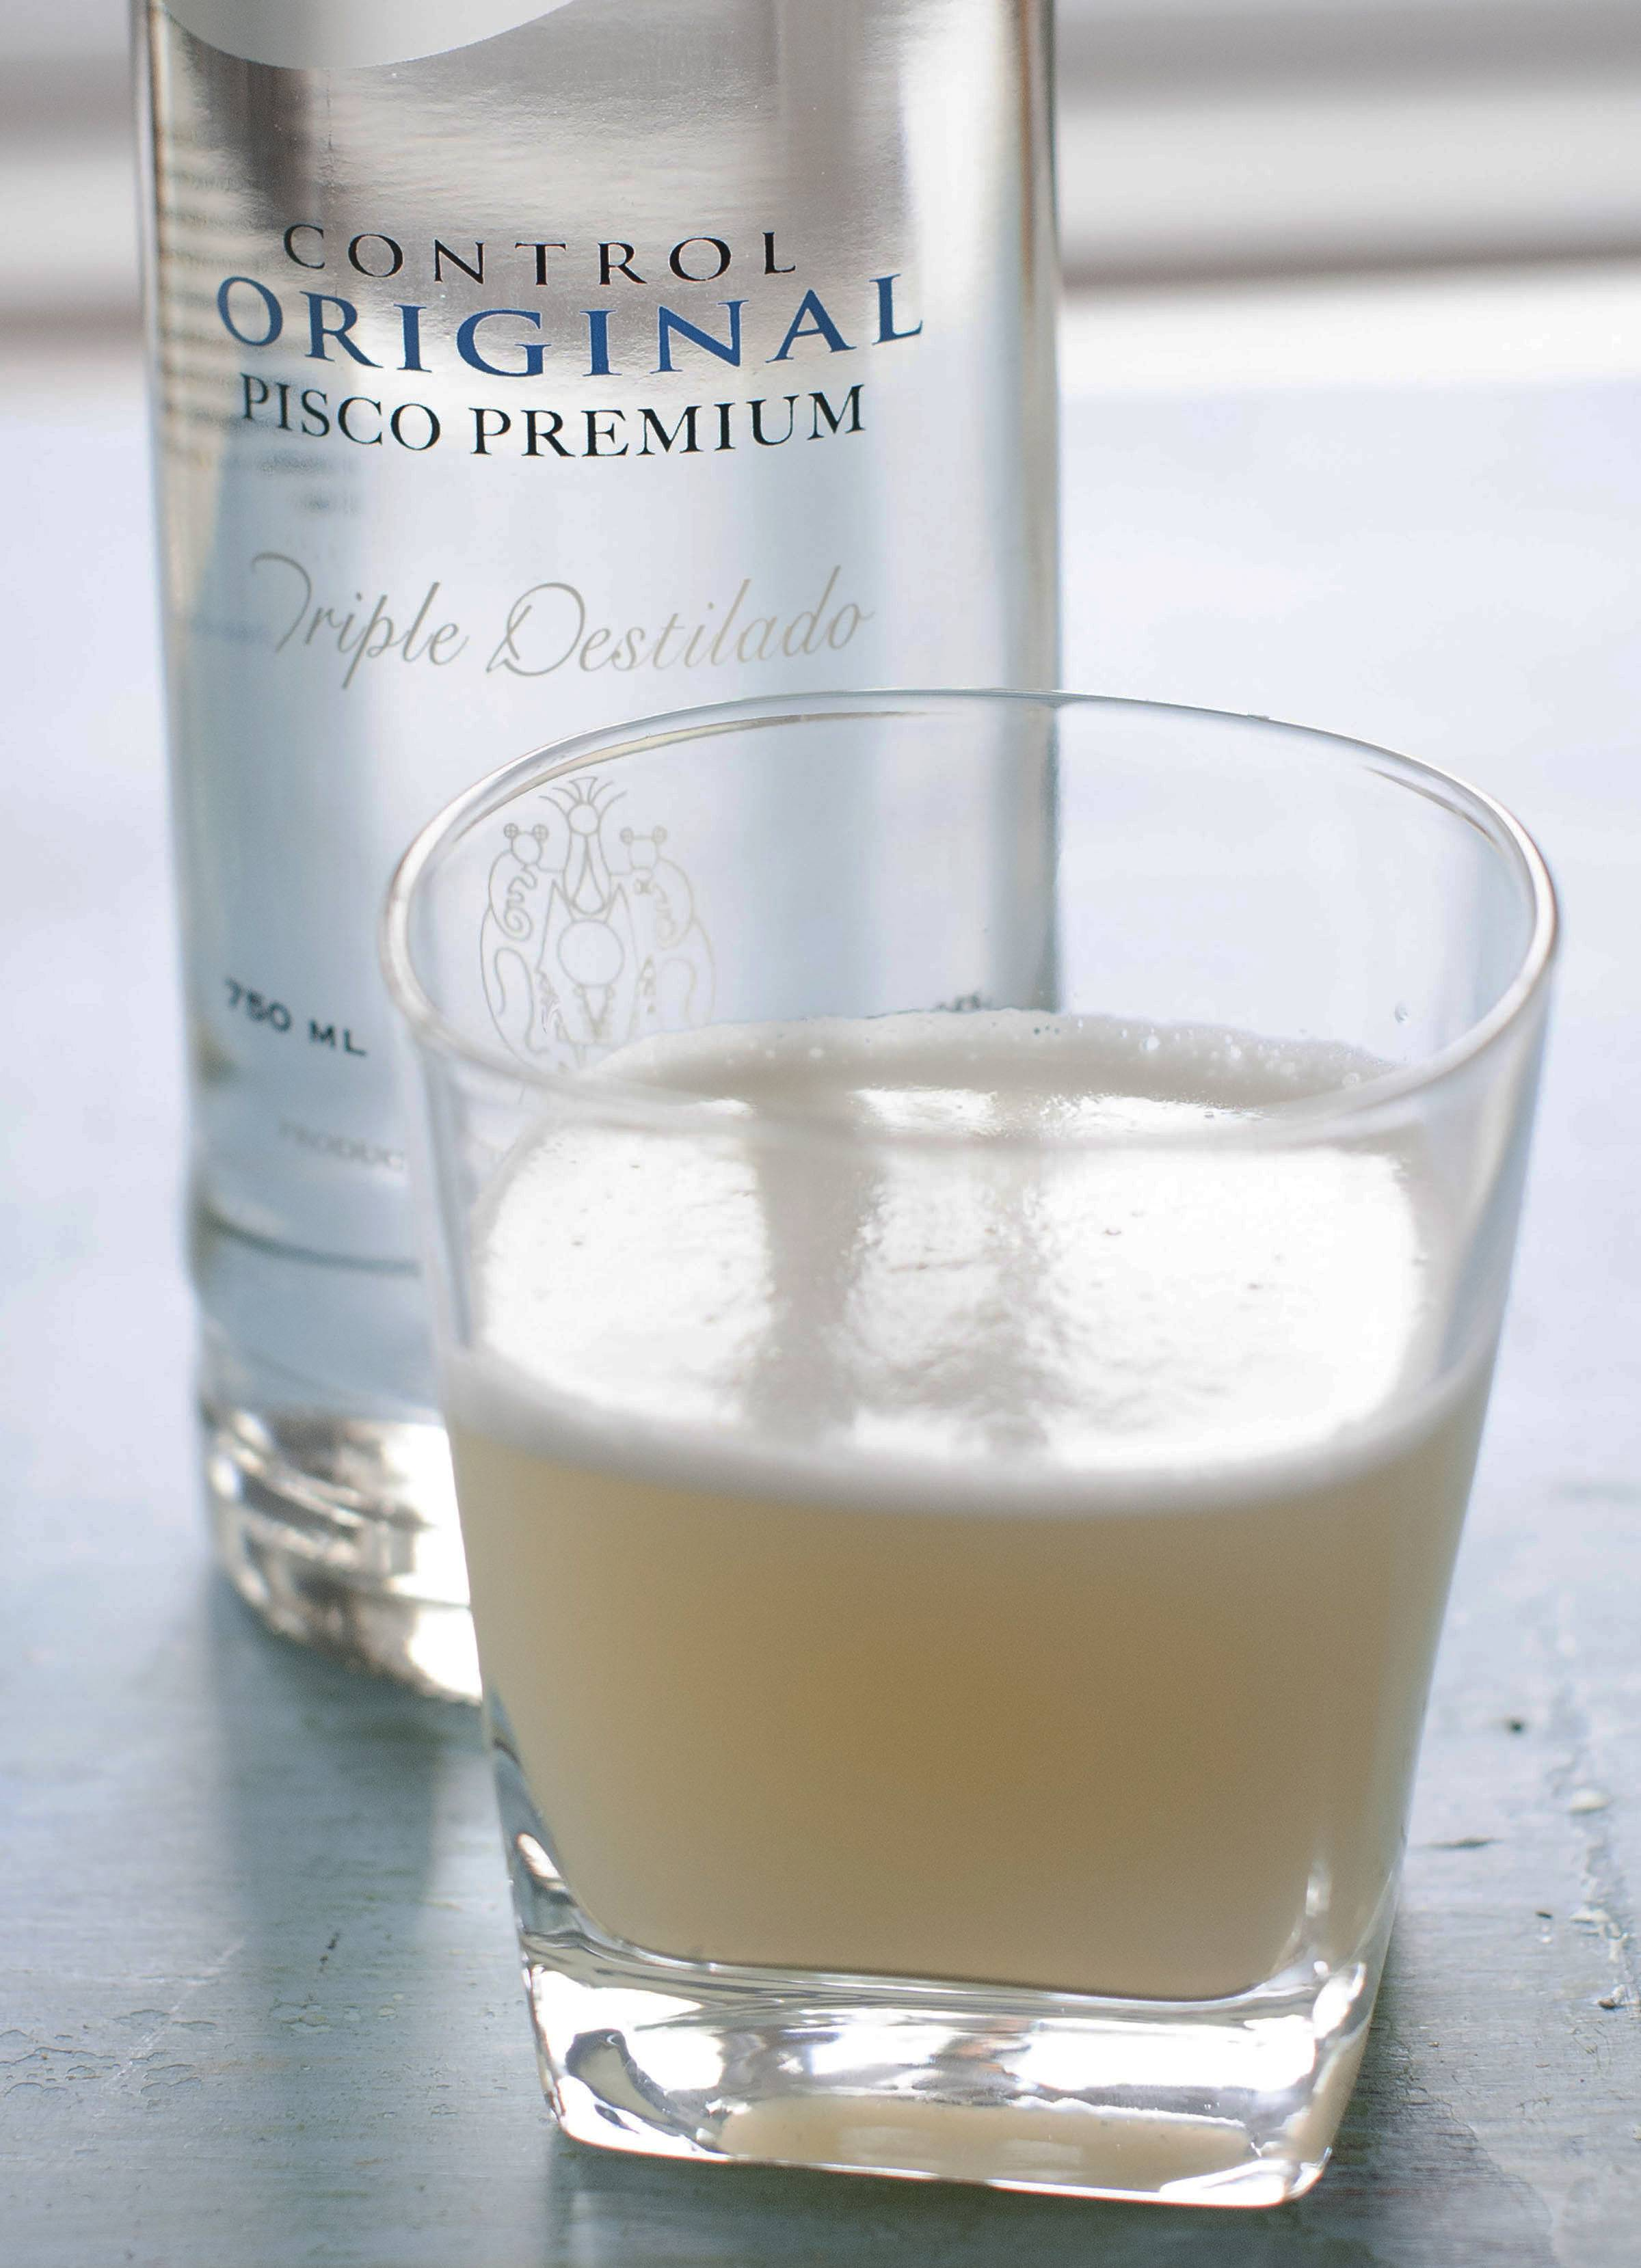 A pisco sour is a classic South American cocktail and perfect for toasting World Cup victories.